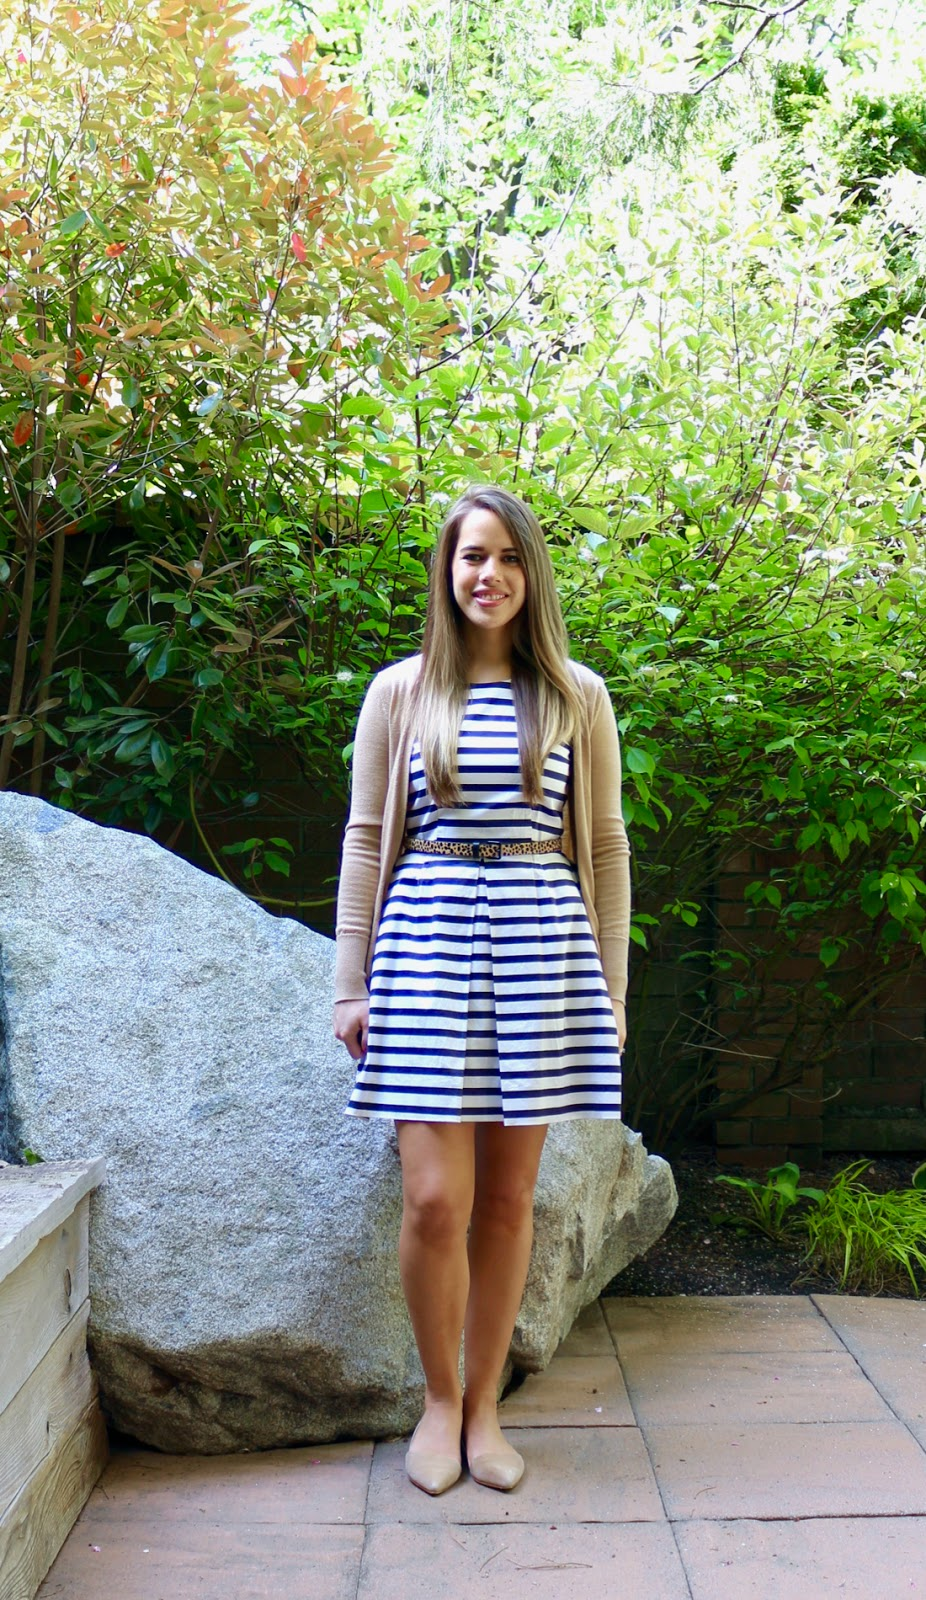 Jules in Flats - Striped Fit and Flare Dress with Leopard Belt and Neutral Accessories (Business Casual Spring Workwear on a Budget)